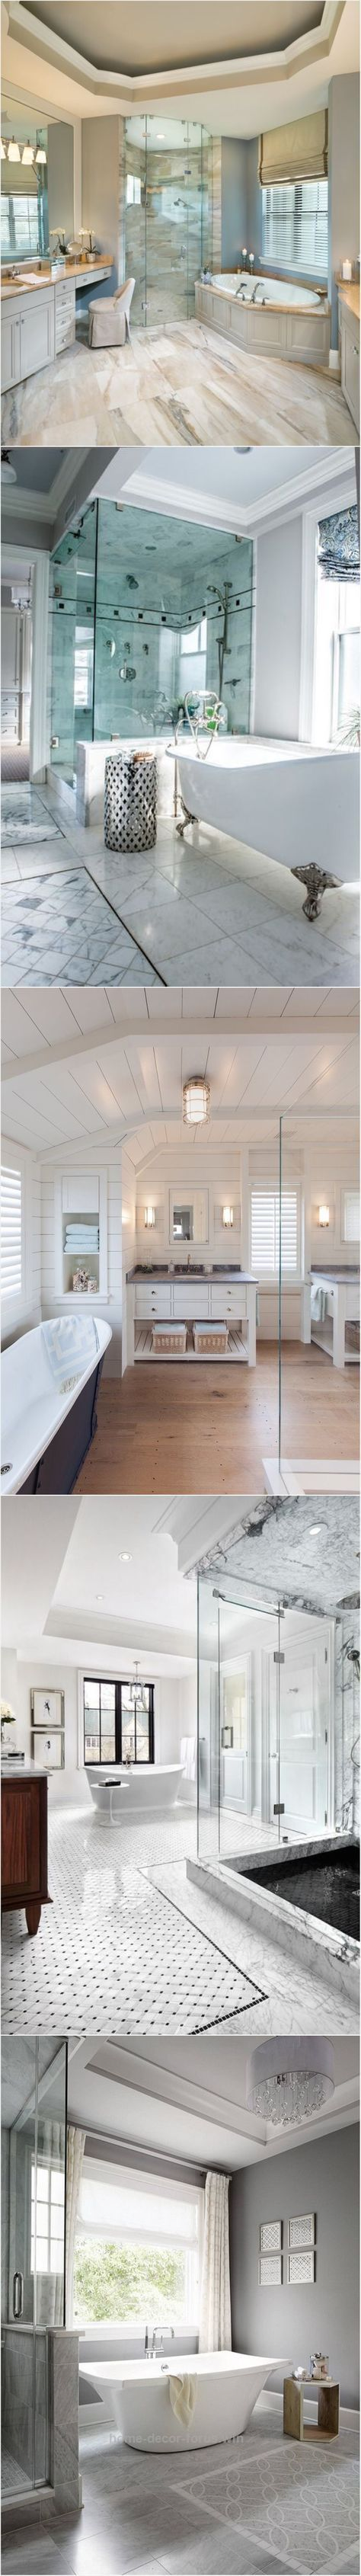 Love the sea glass green look and lighter neutrals